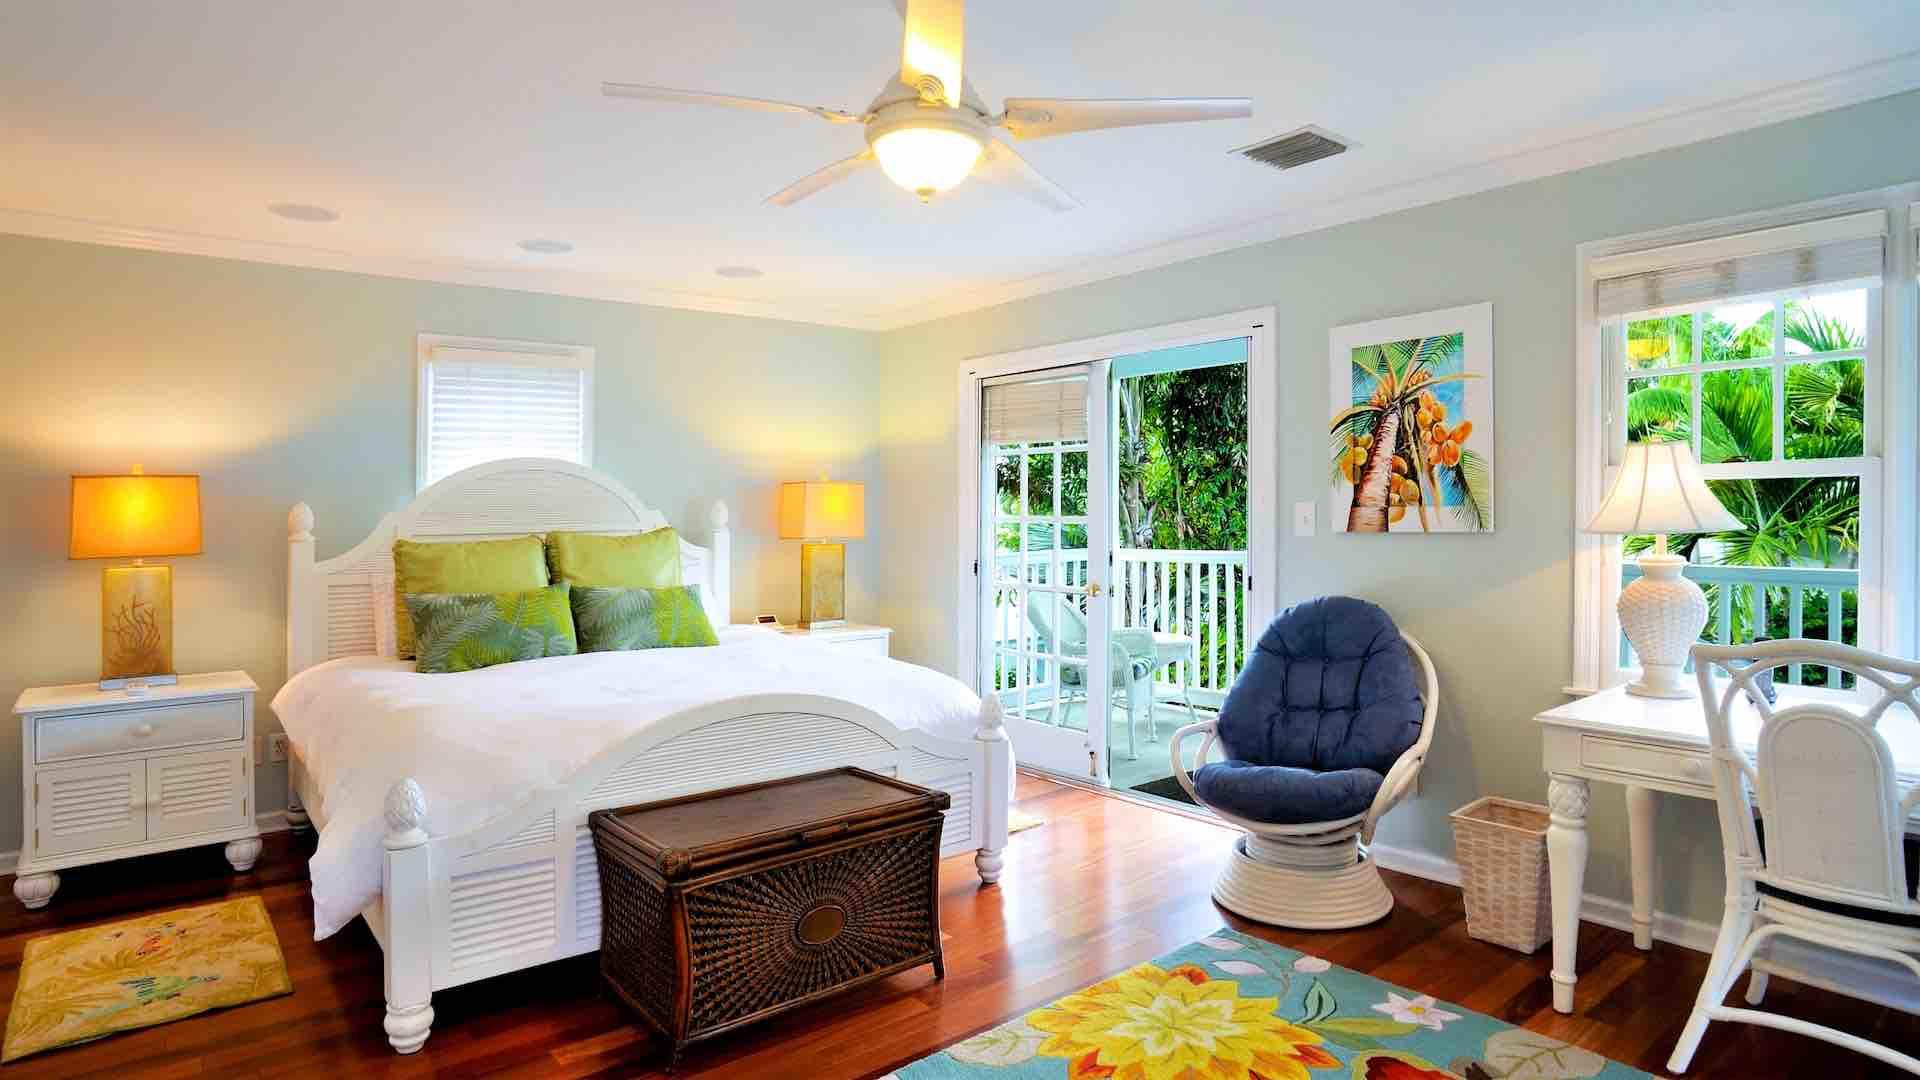 The master bedroom suite has two sets of French doors, king bed and ceiling fan...